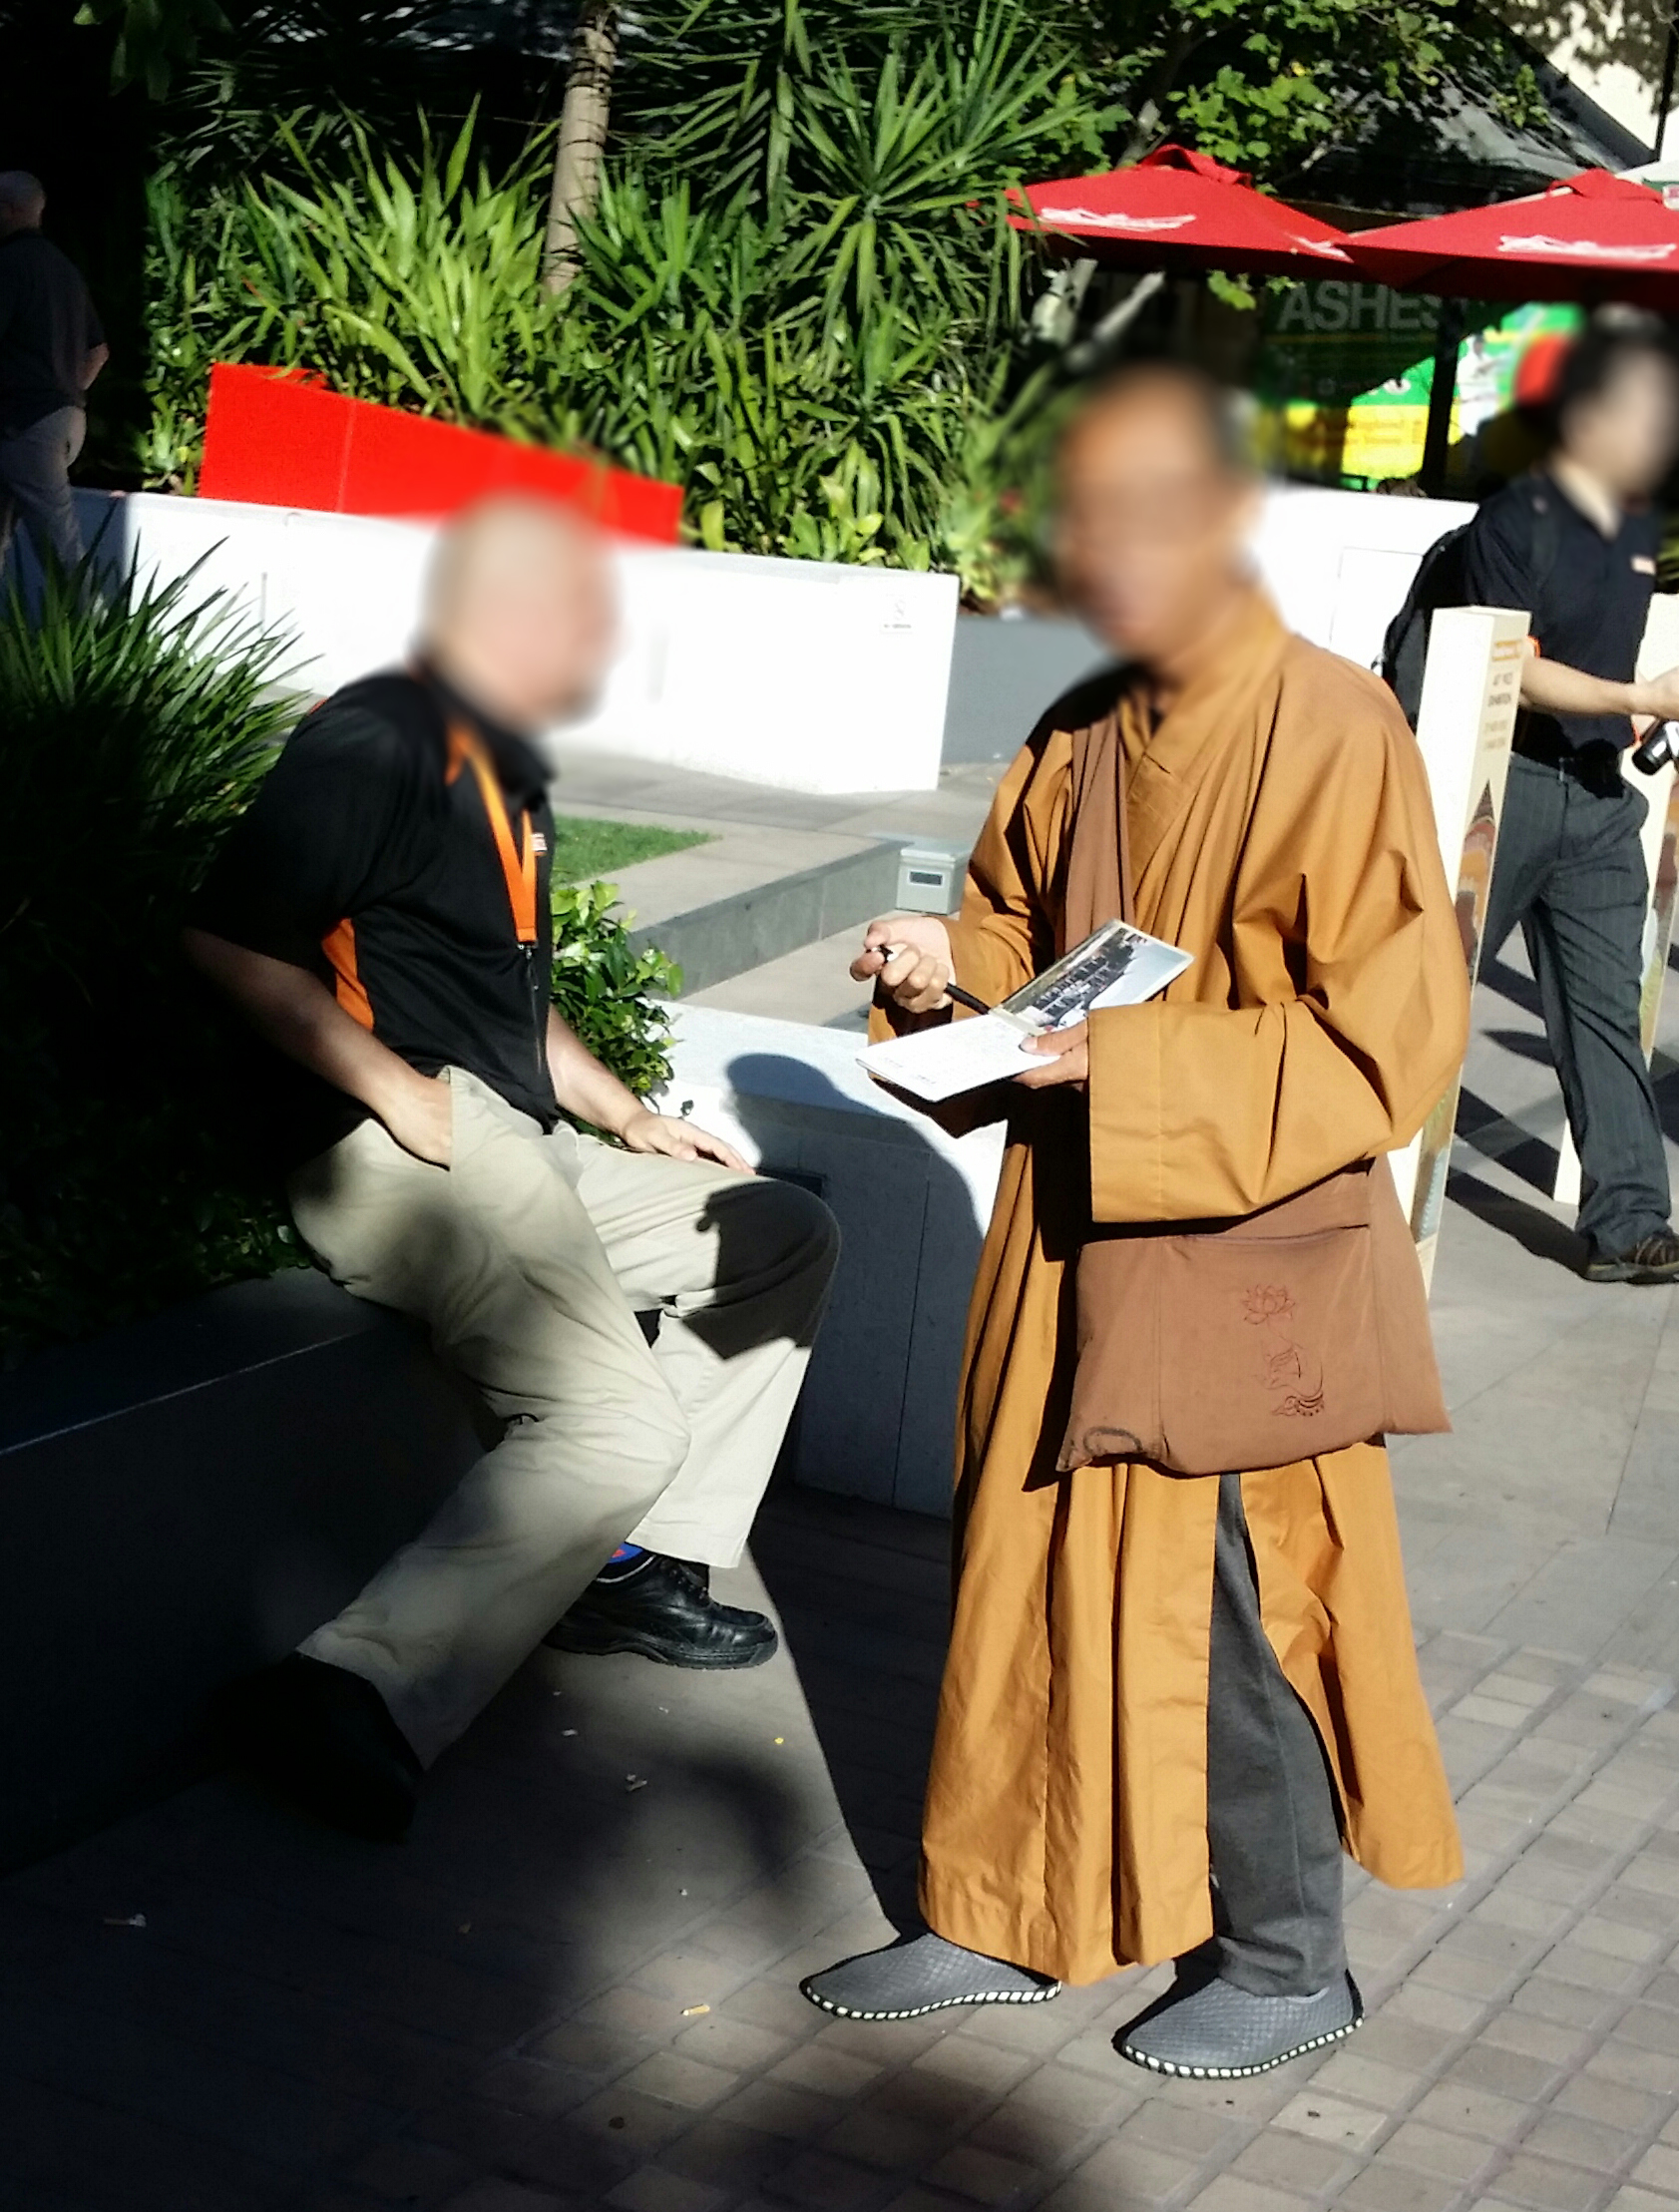 Money collecting monks